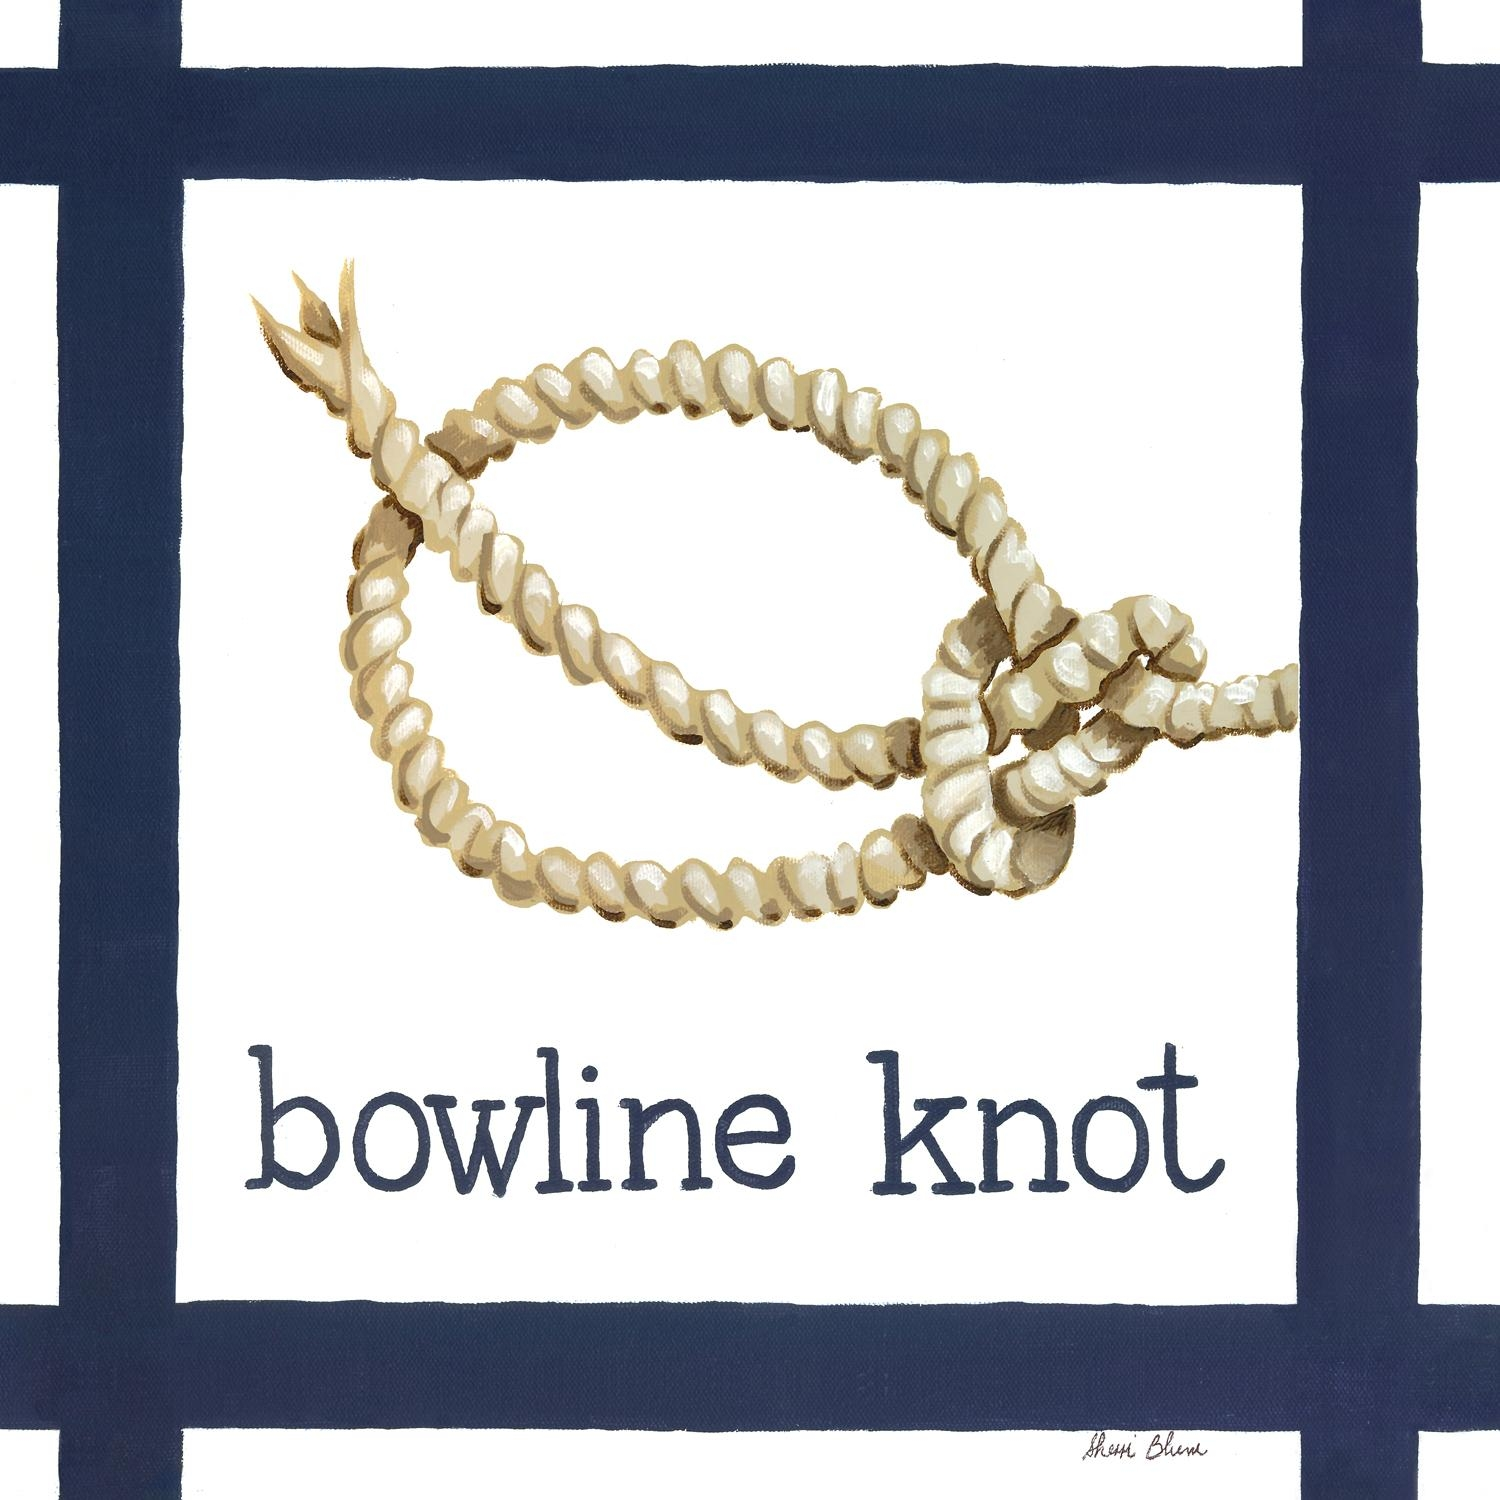 Nautical Nursery Decor, Nautical Knot Bowline Canvas Wall Art For Kids Regarding Nautical Canvas Wall Art (Image 7 of 20)